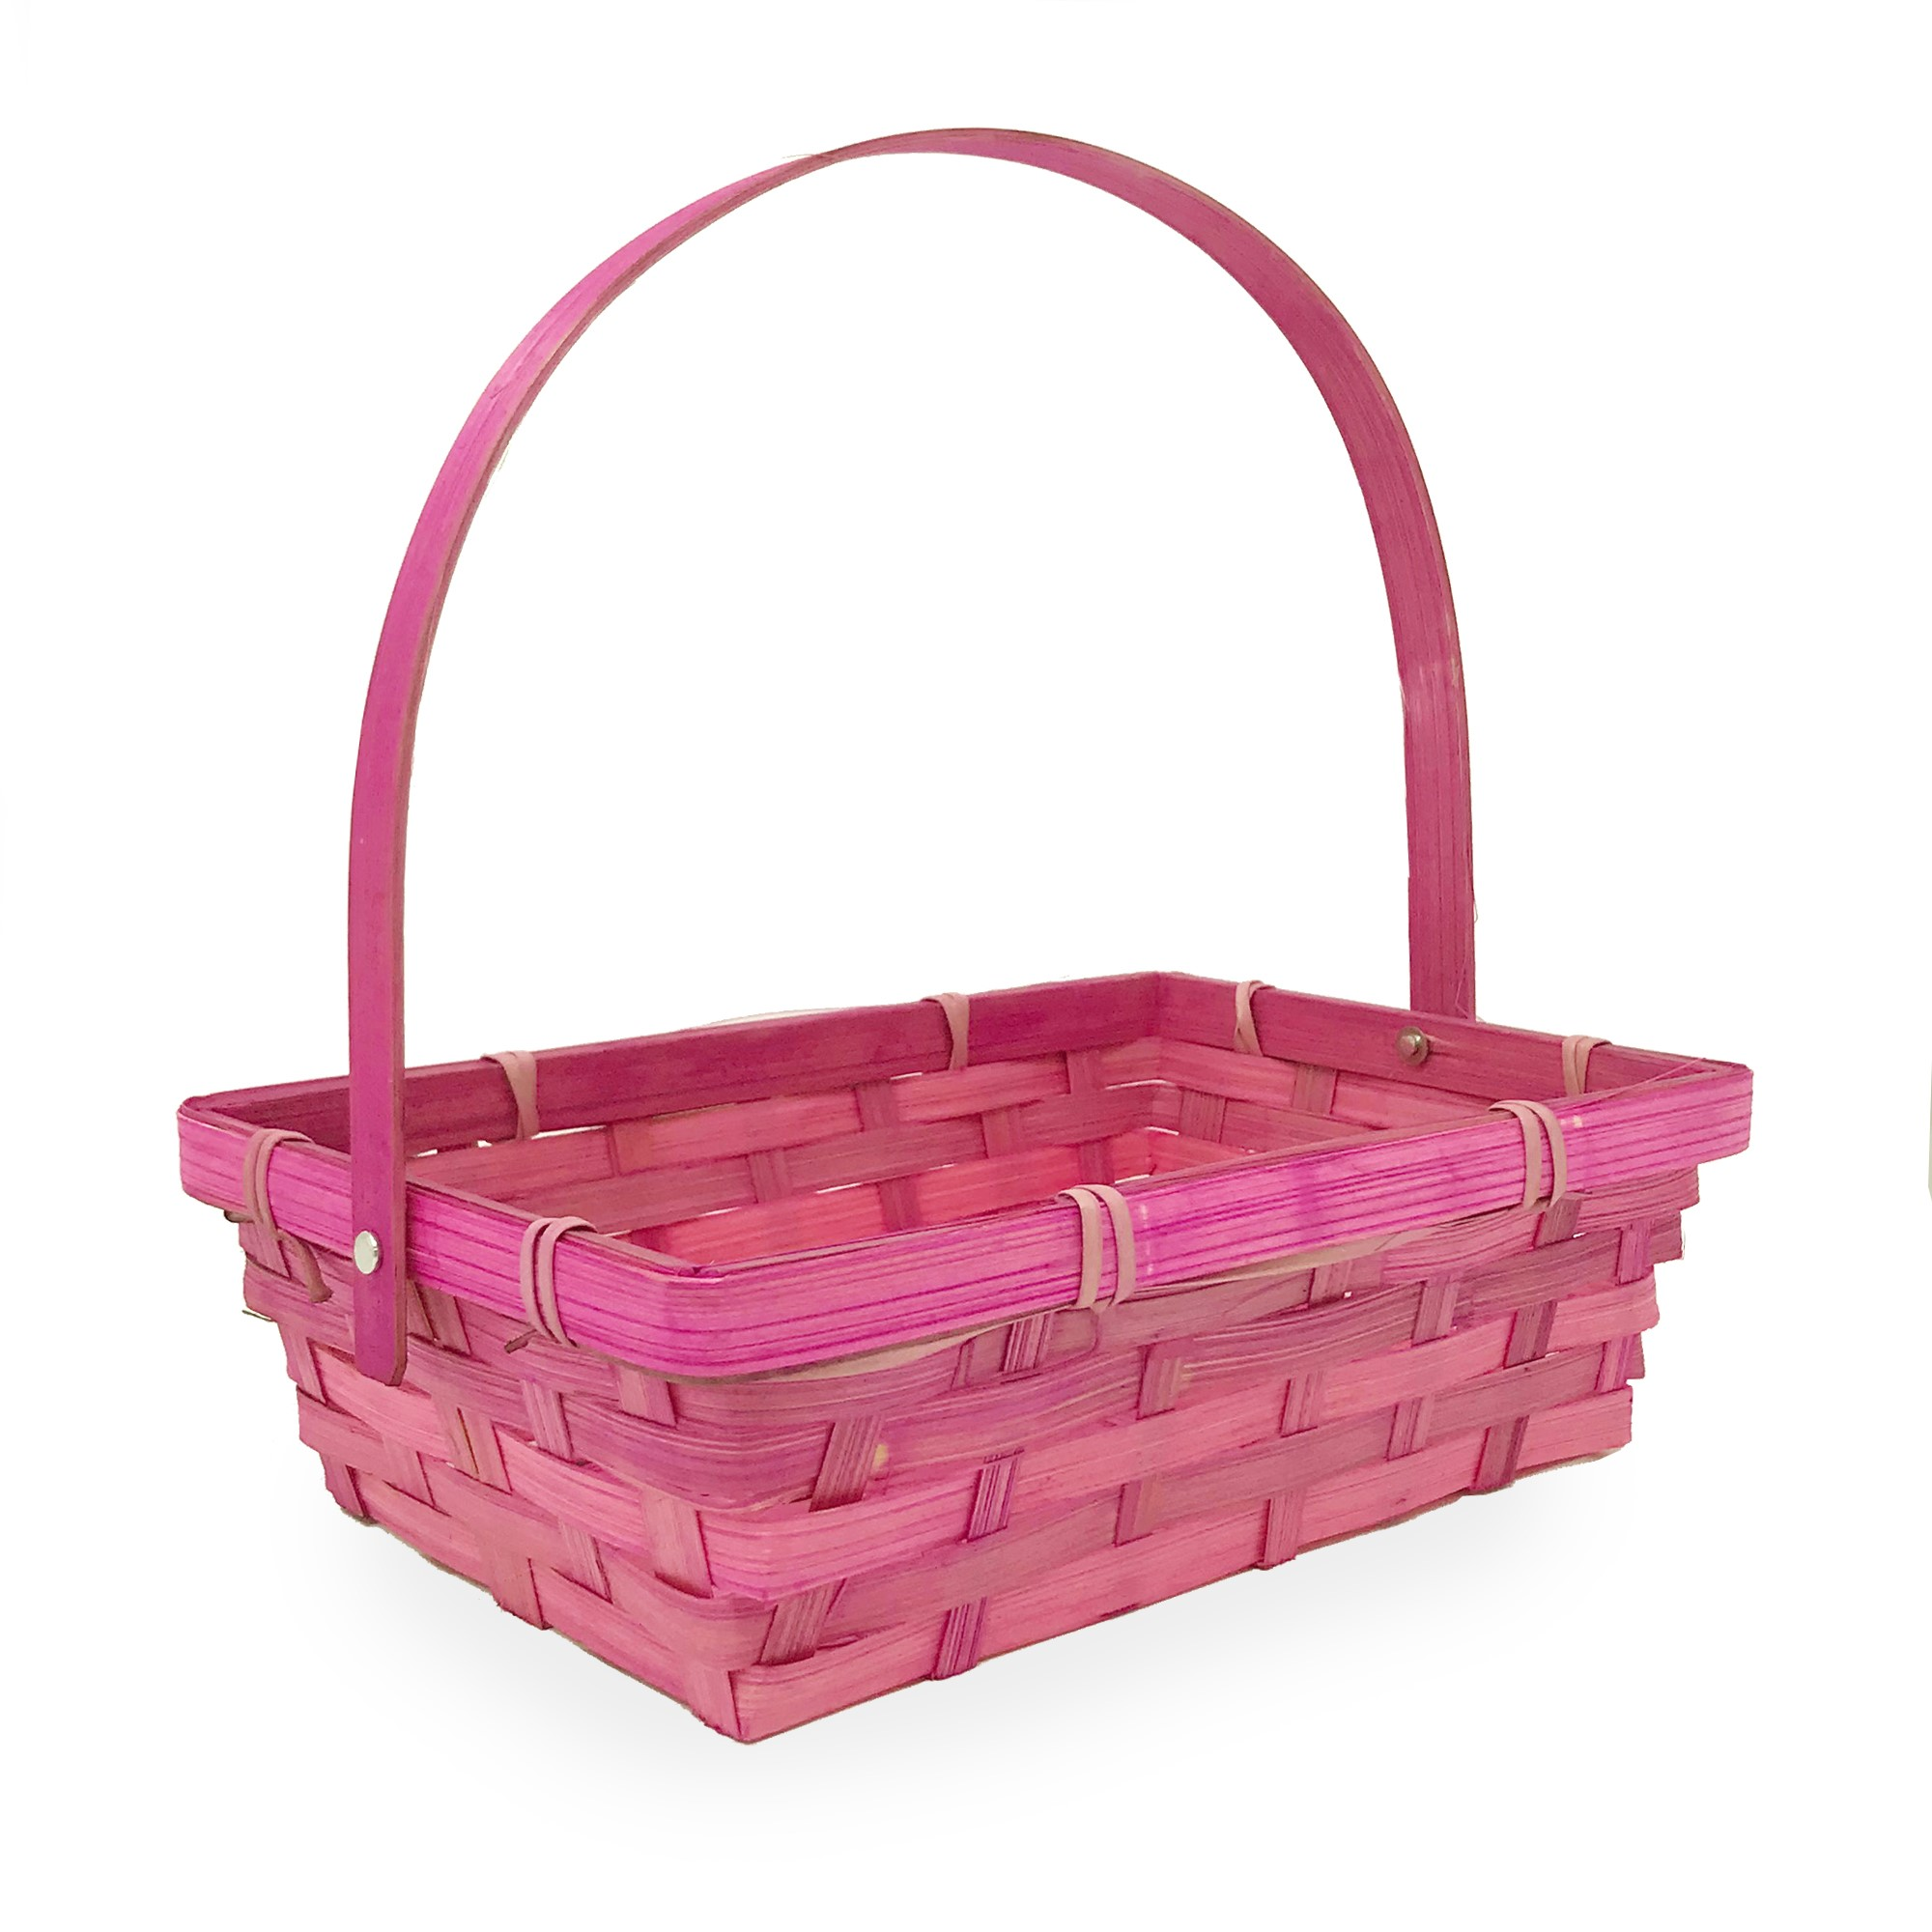 Small Rectangular Bamboo Swing Handle Basket - Pink 8in